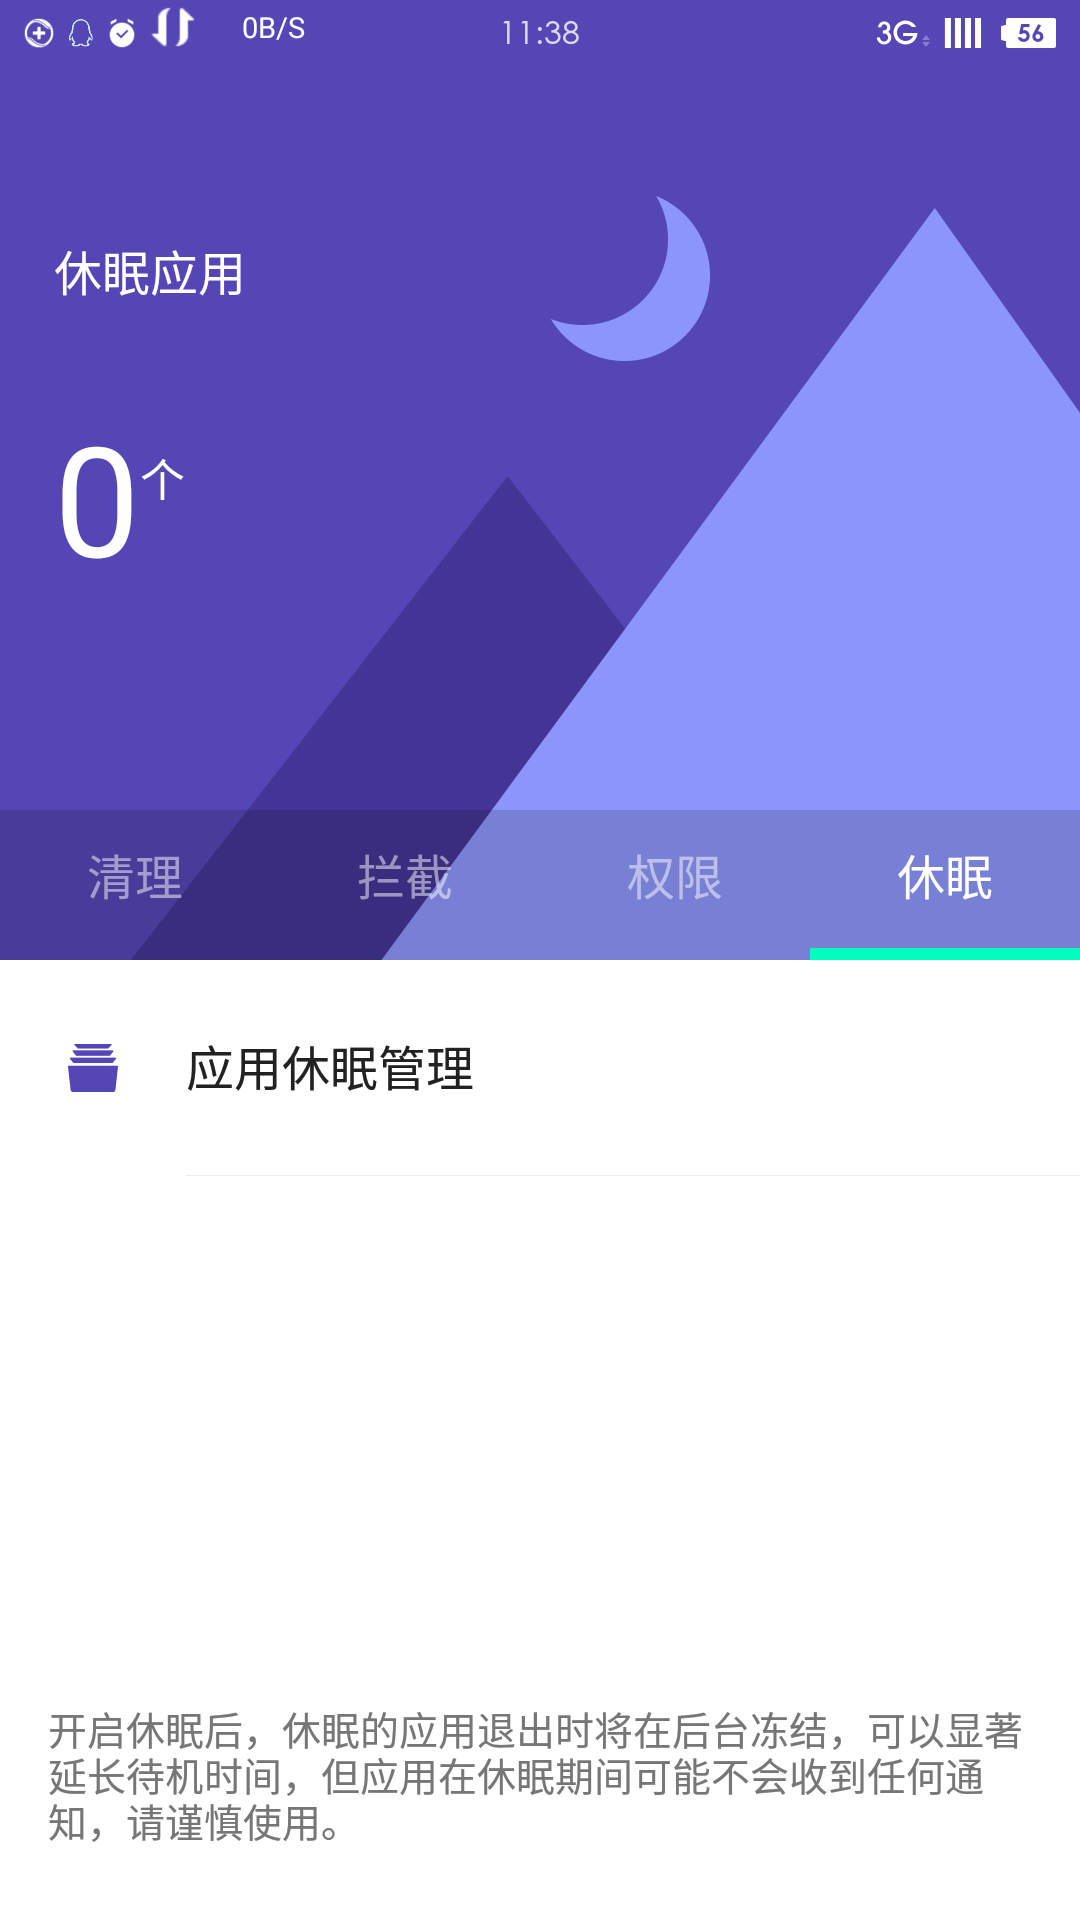 Screenshot_2015-12-31-11-38-24.png